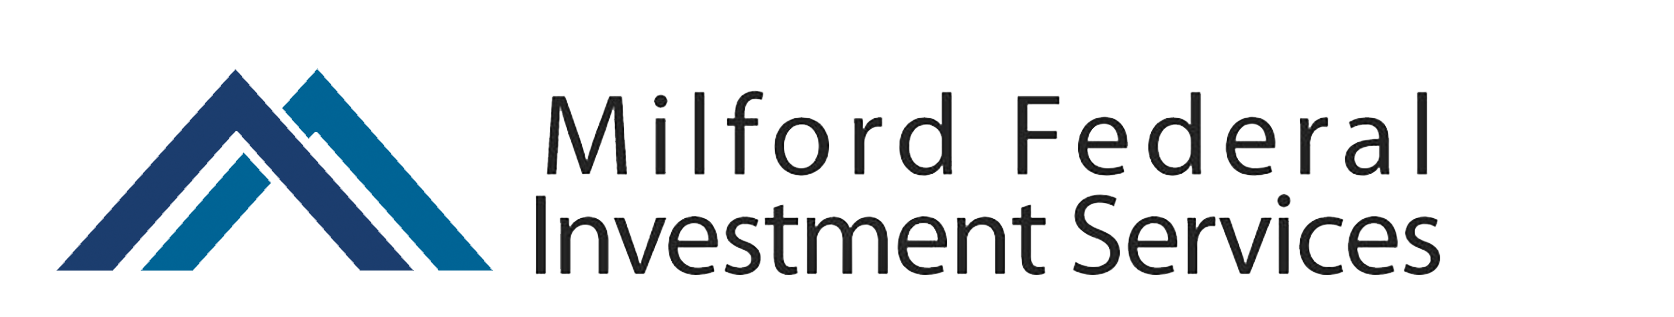 Milford Federal Investment Services